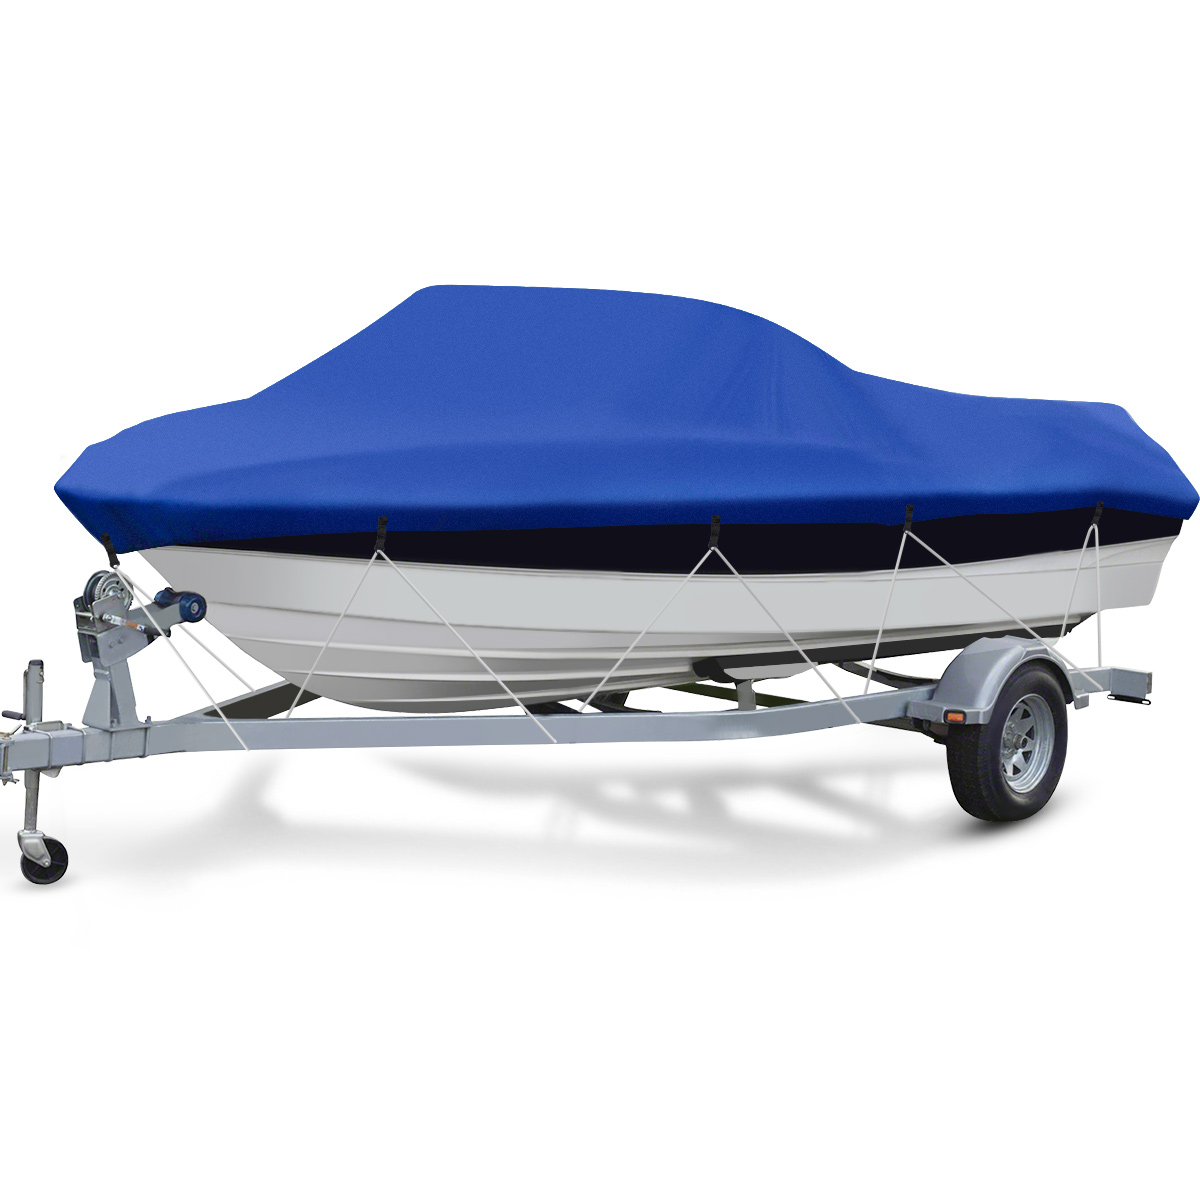 Favoto Trailerable Boat Cover Marine Grade Heavy Duty 600D Oxford Fabric Waterproof Sun Outdoor Protection with Carrying Bag Windproof Straps Sealed Seams Fit 17-19 V-Hull Tri-Hull